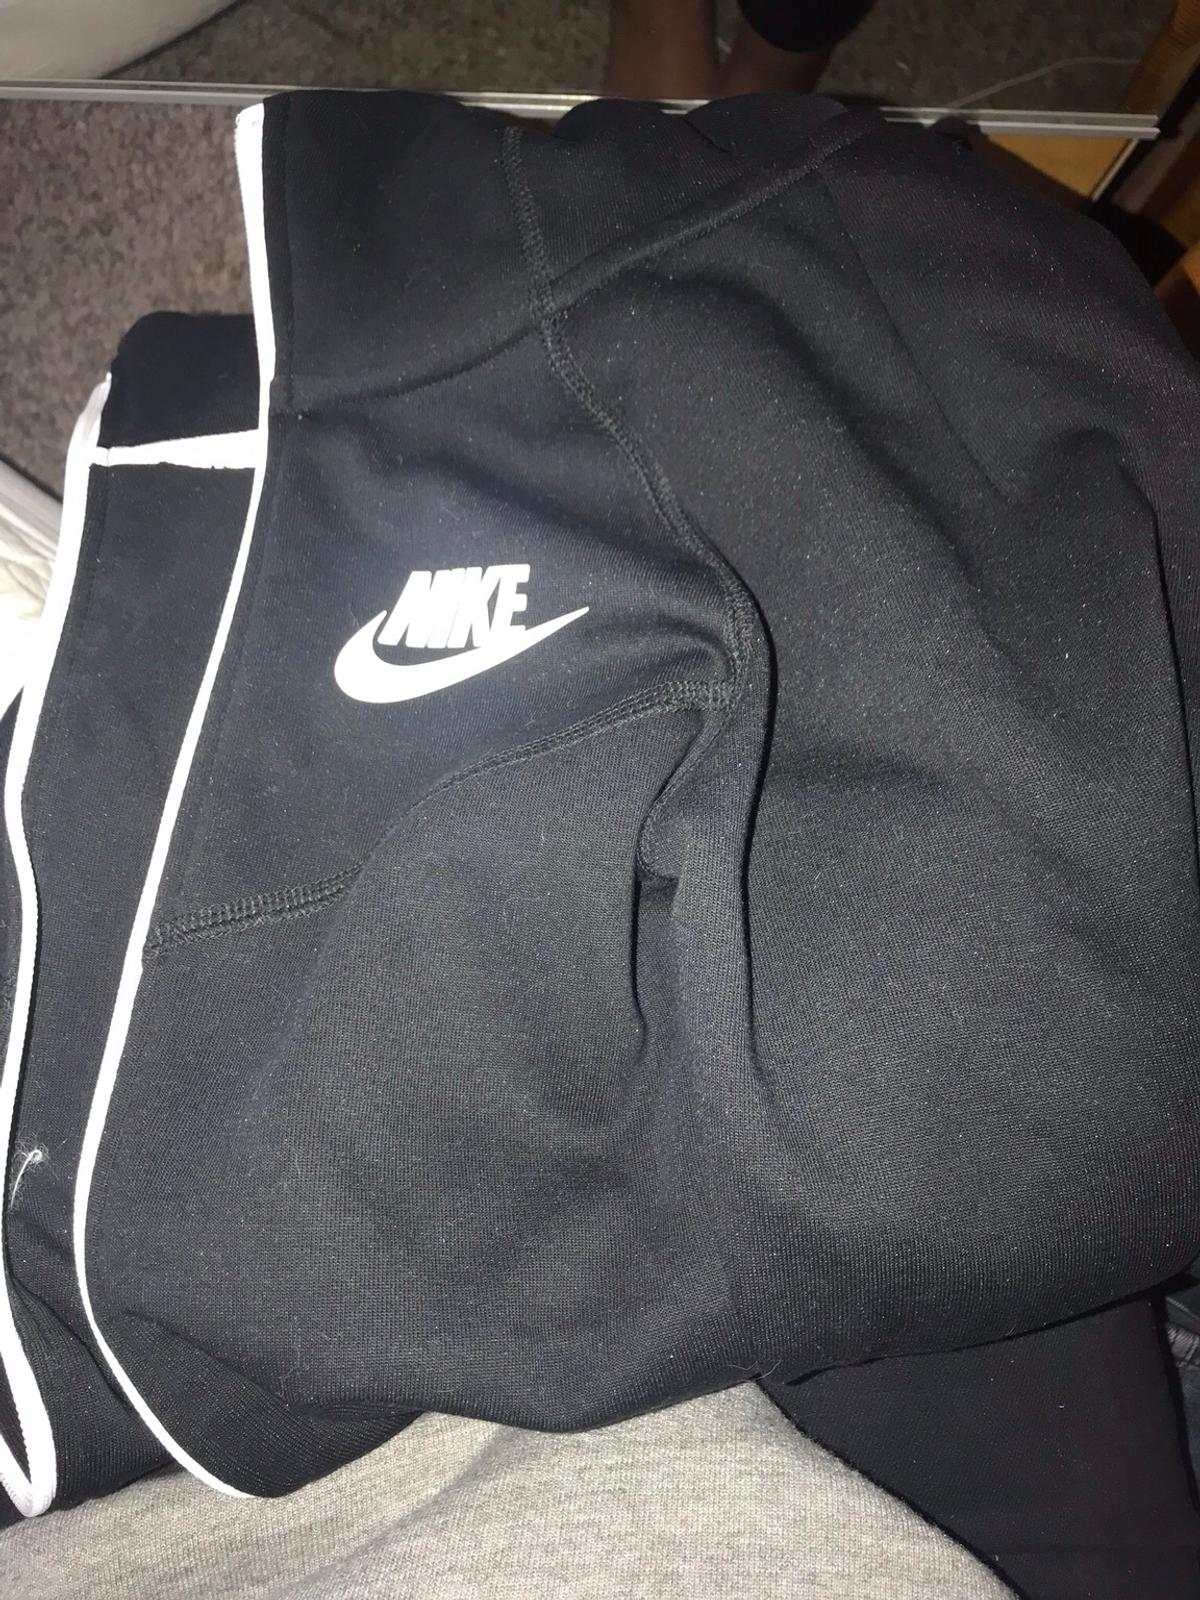 Nike Tech Tracksuit Womens In Nw10 Brent For 90 00 For Sale Shpock